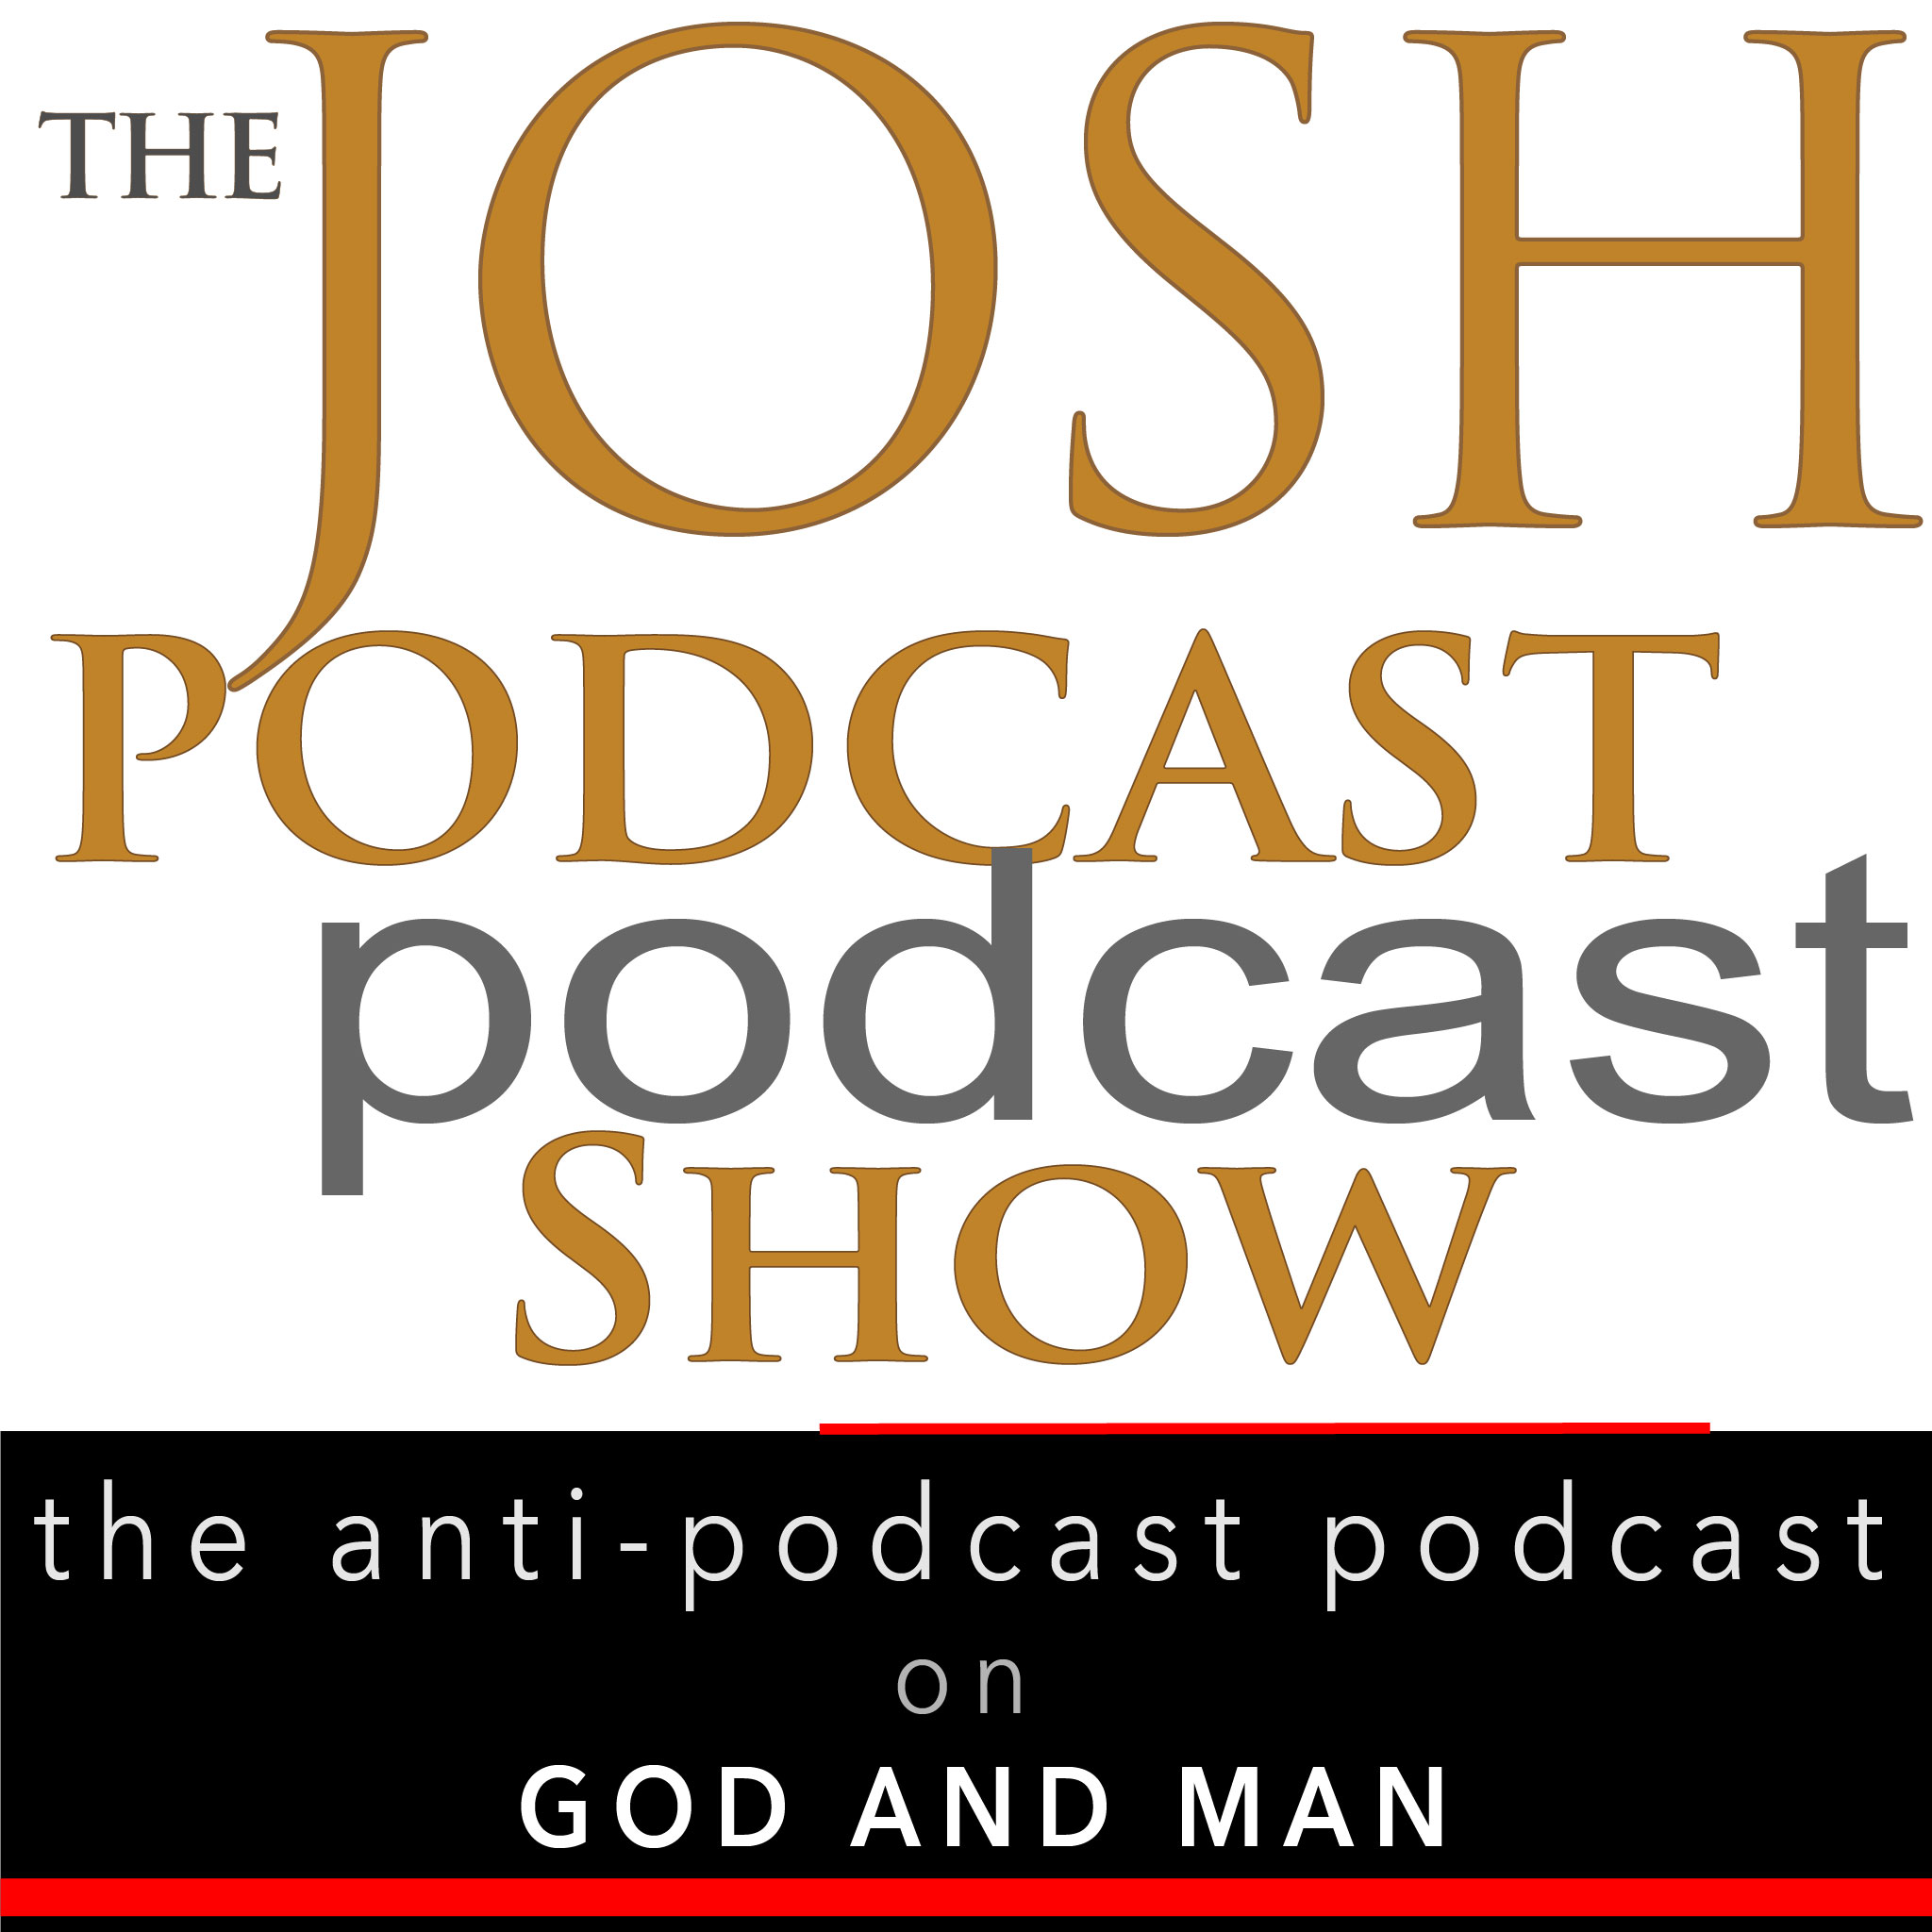 The Josh Podcast podcast Show: The Anti-Podcast podcast on God and Man show art